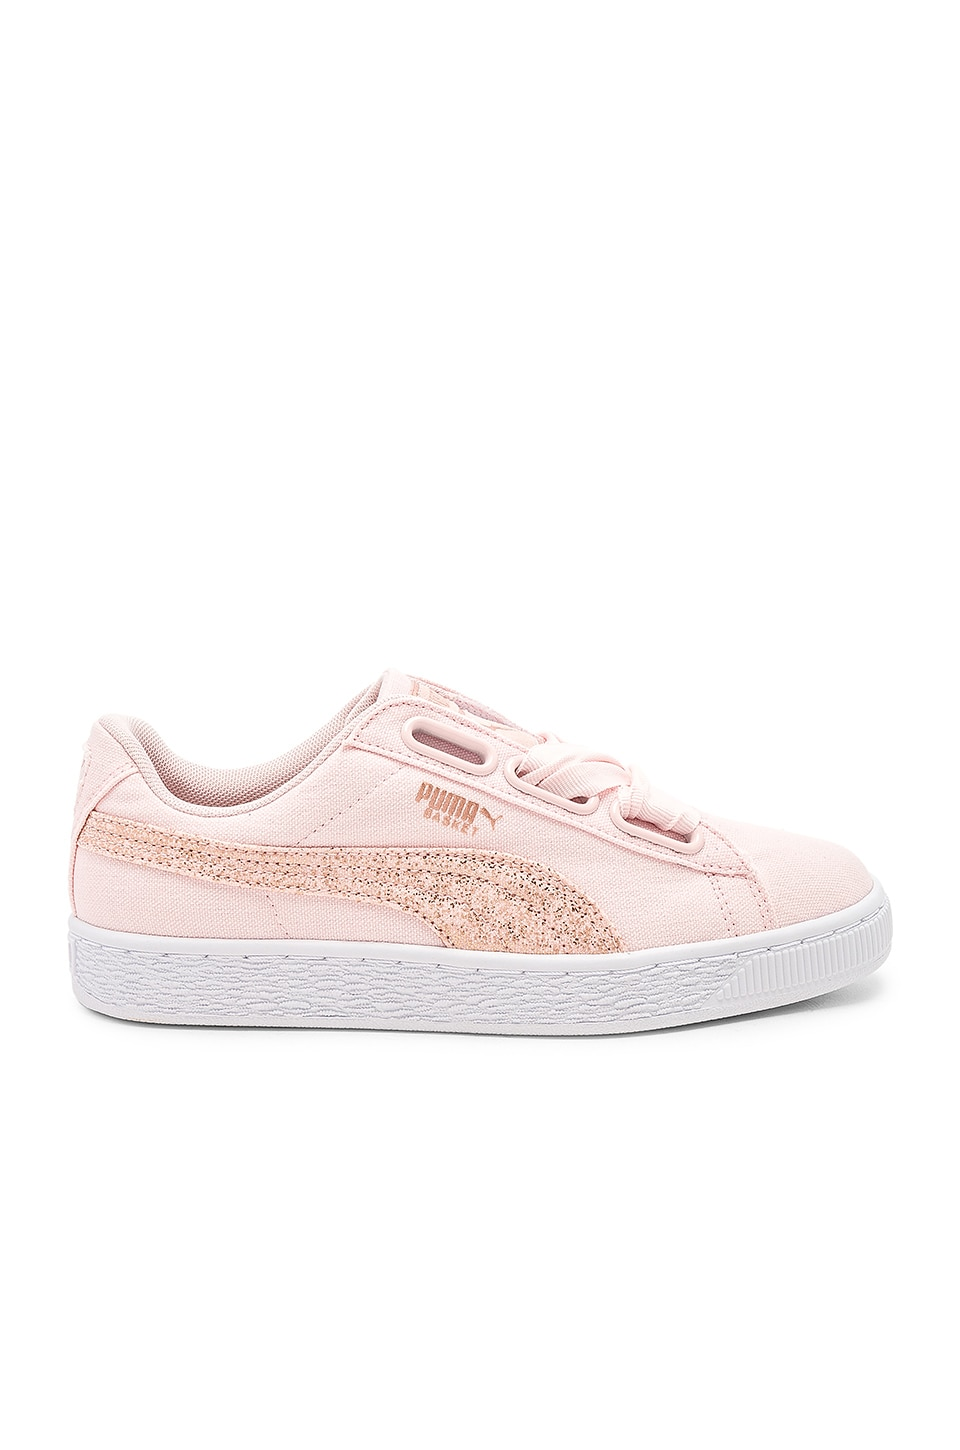 Women'S Basket Heart Canvas & Glitter Lace Up Sneakers, Pearl/ White/ Rose Gold